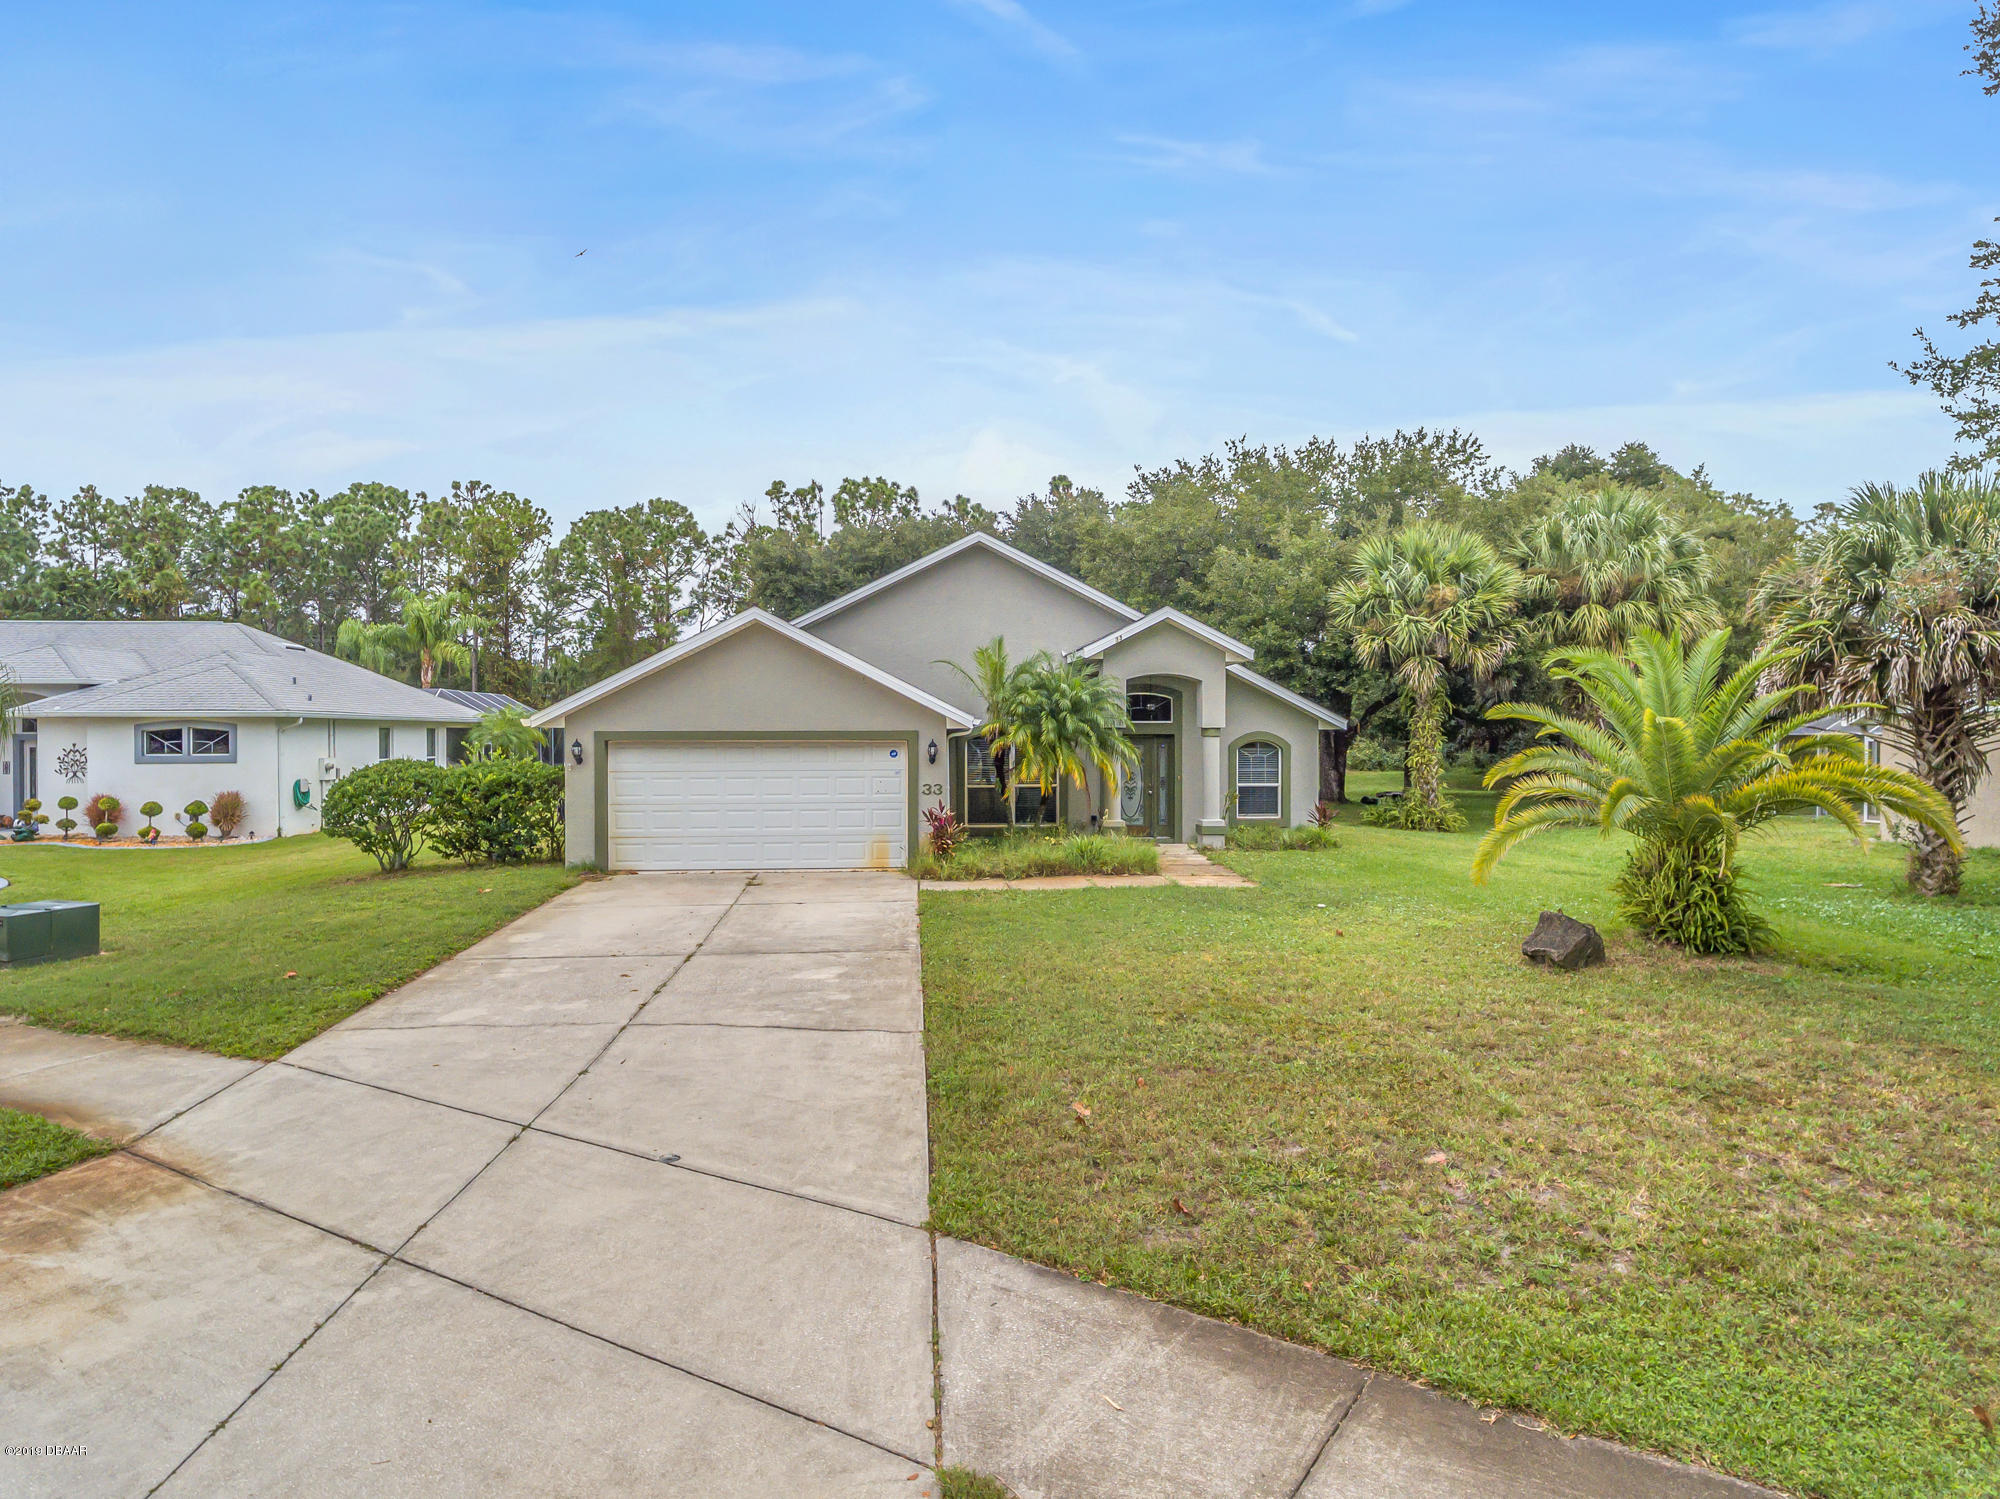 Photo of 33 Ocean Pines Drive, Ormond Beach, FL 32174